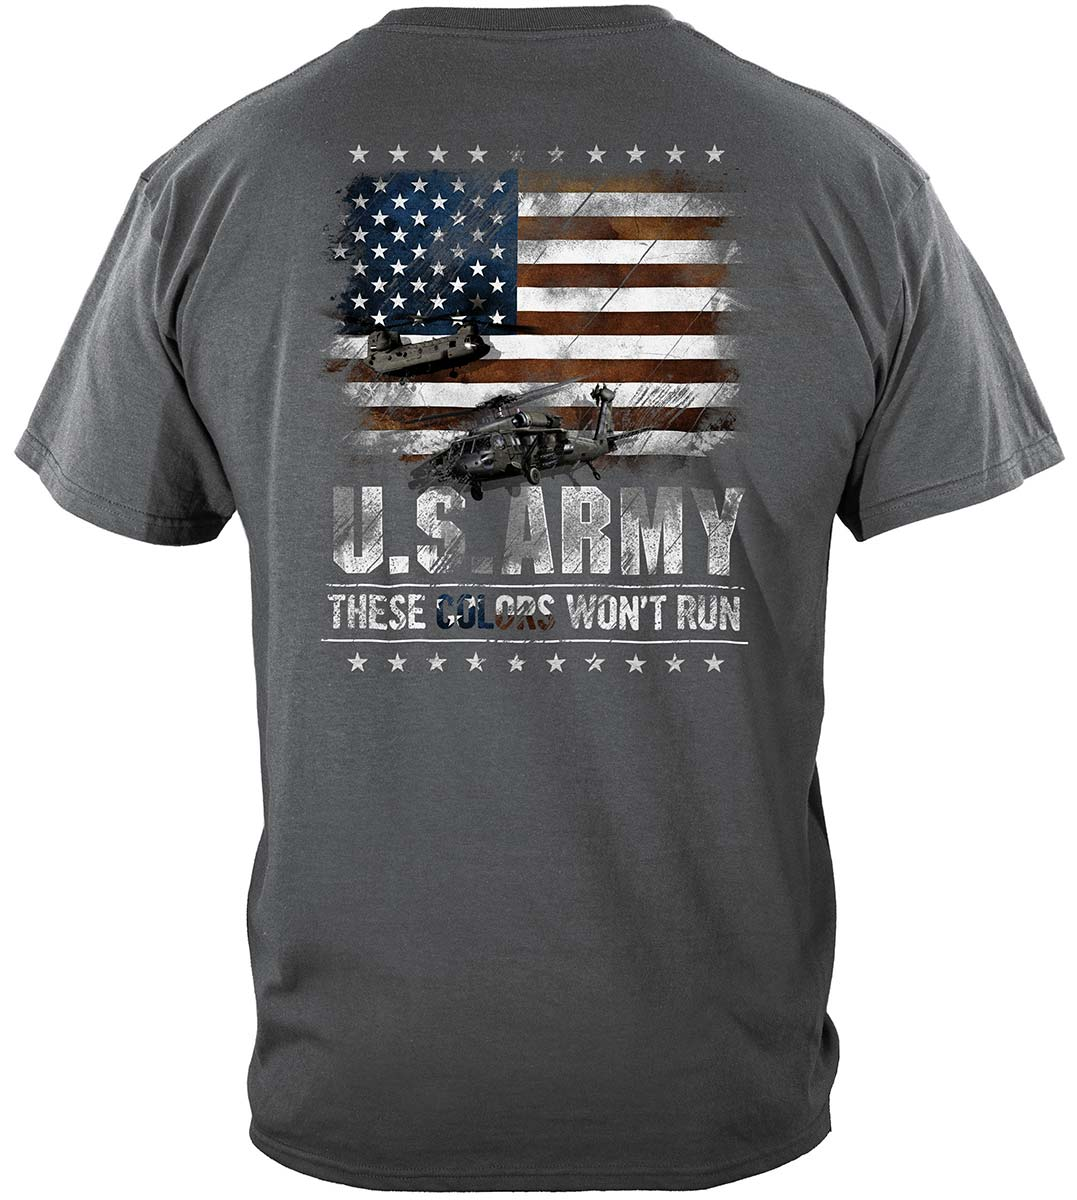 Army These Color Don't Run Premium T-Shirt